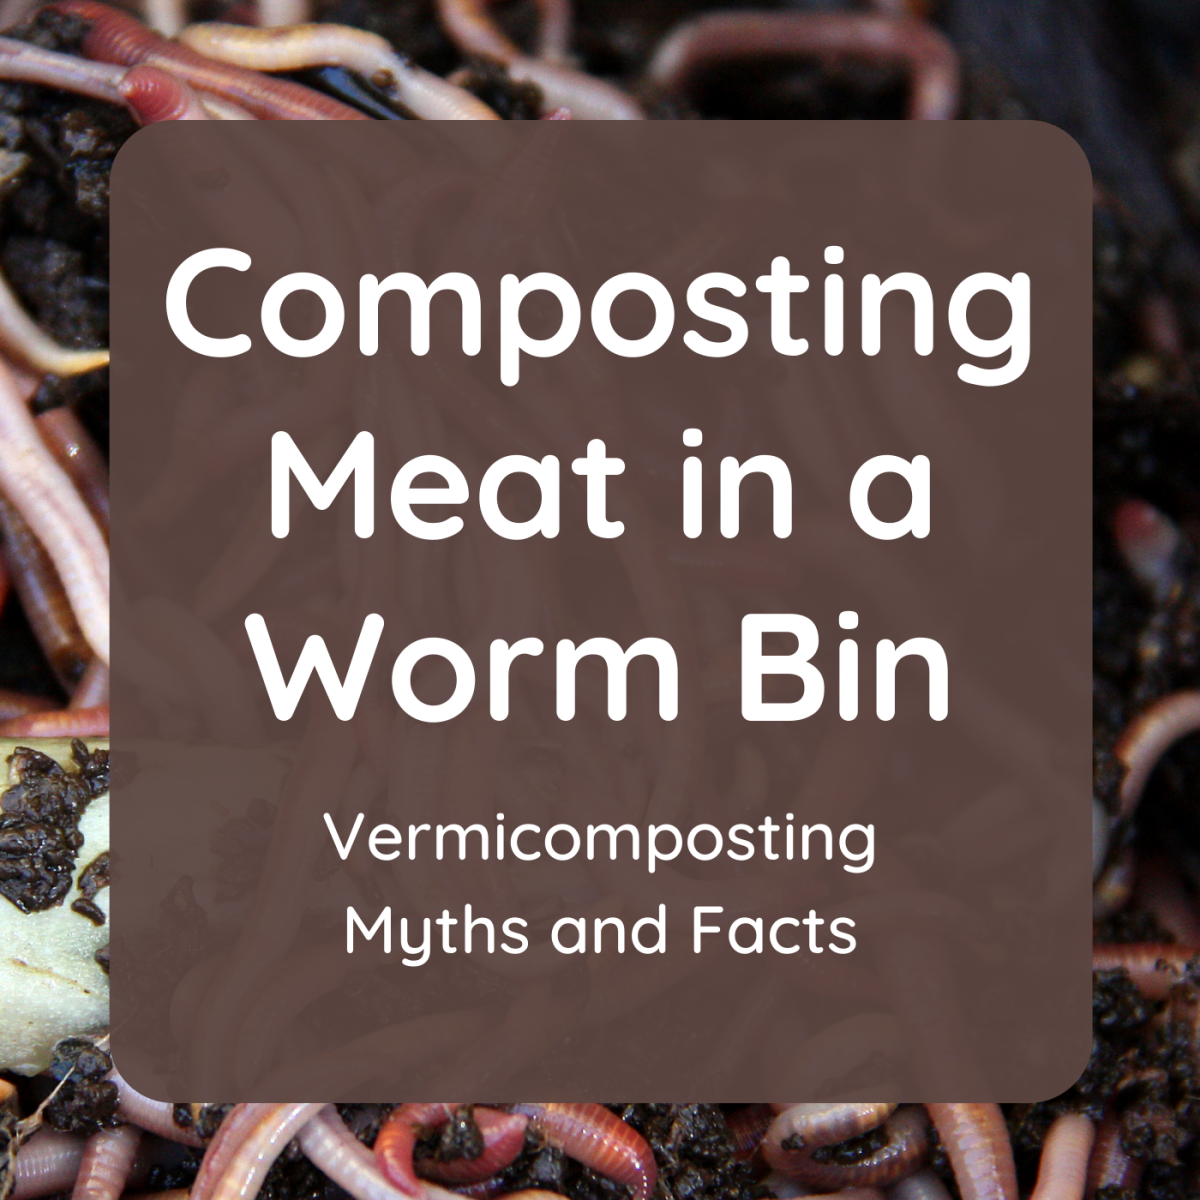 Contrary to popular belief, I have successfully composted meat in my worm bin. Discover some other myths and facts about vermicomposting.